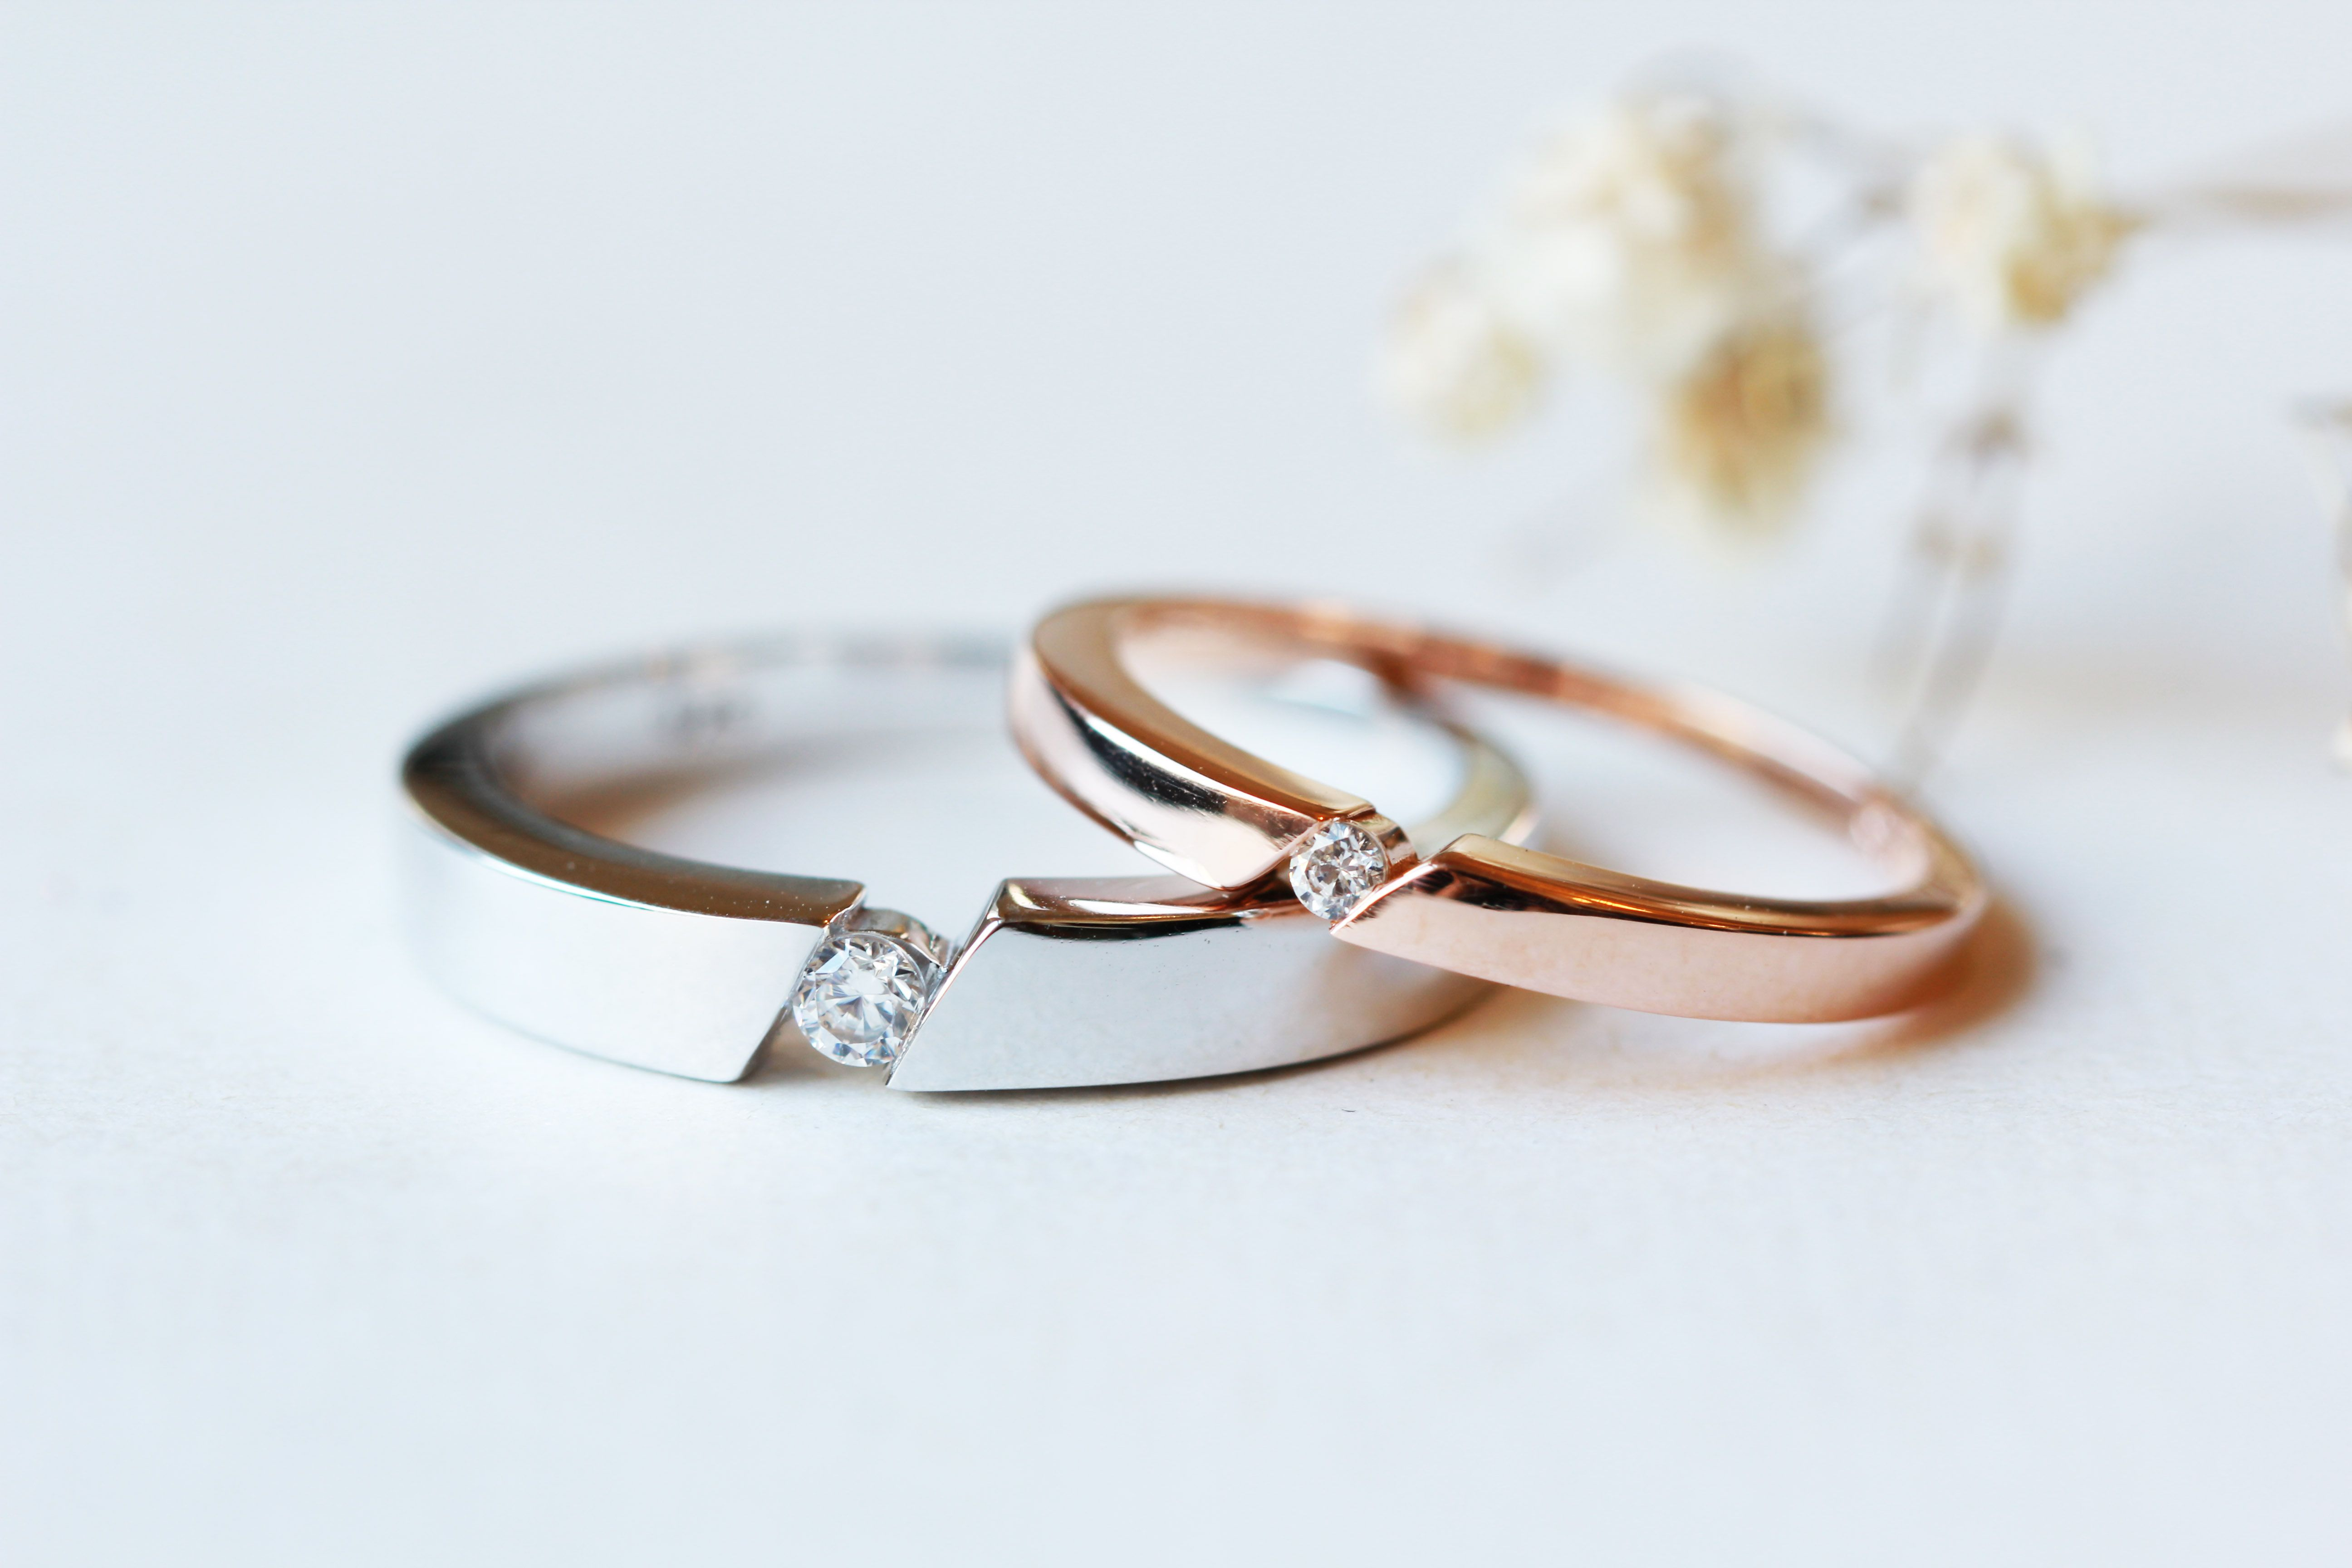 Simple His And Hers Couples Rings Diamond Cz Wedding Rings Set Etsy In 2020 Cz Wedding Ring Sets Cz Wedding Rings Wedding Ring Sets